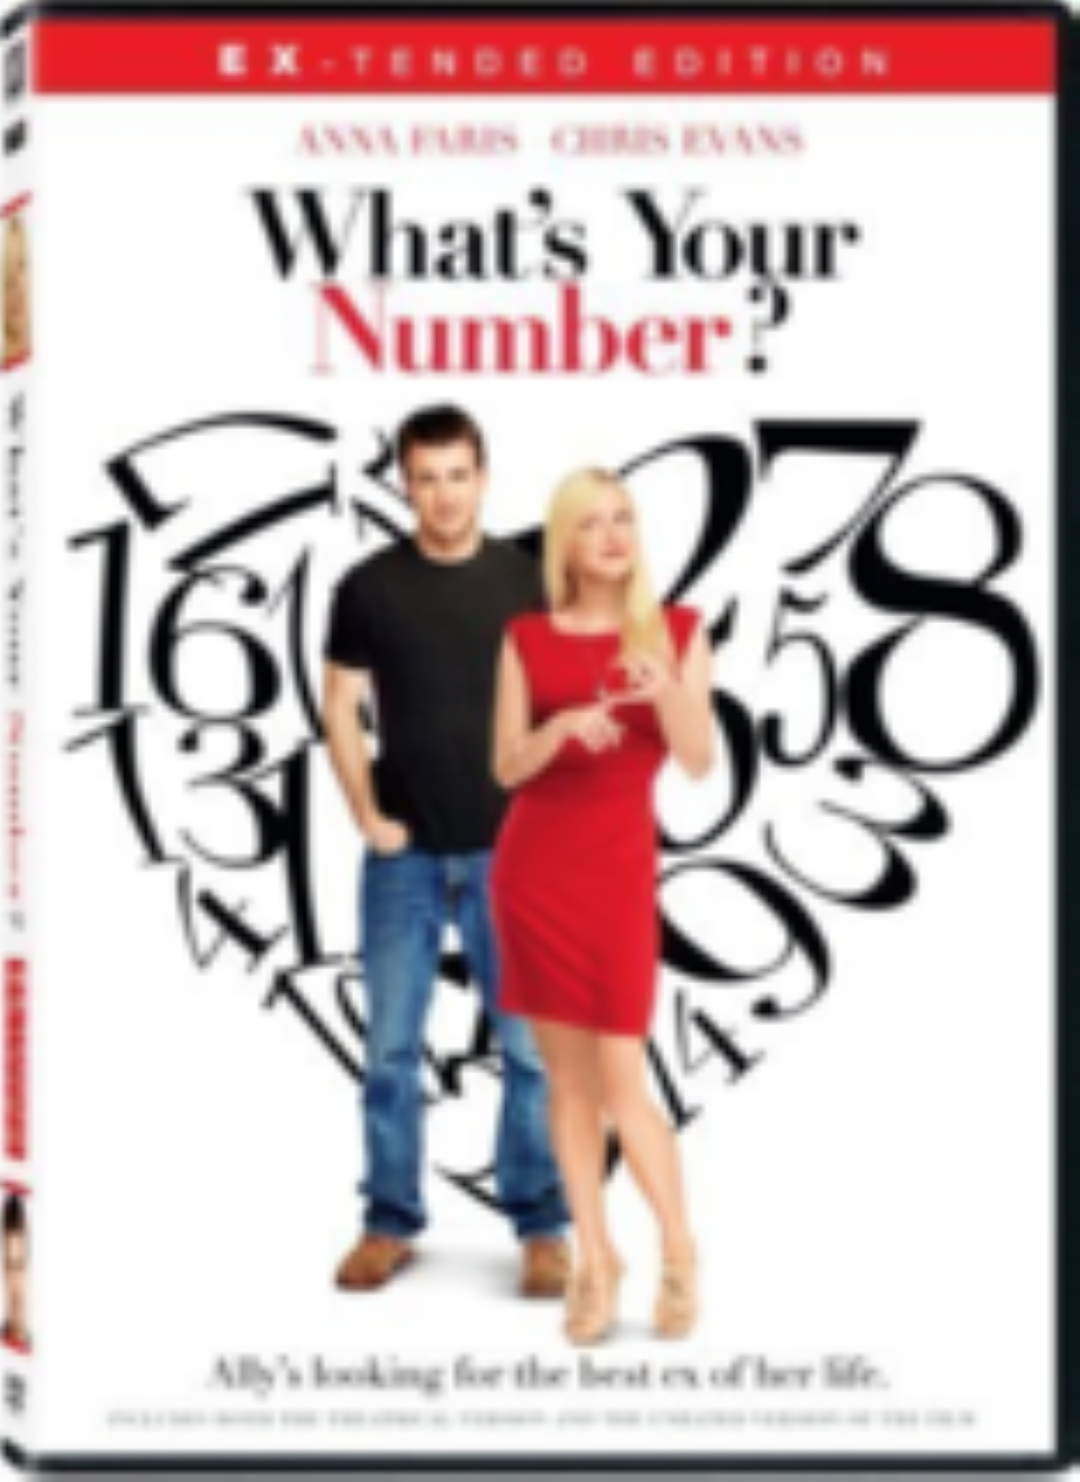 What's Your Number Dvd